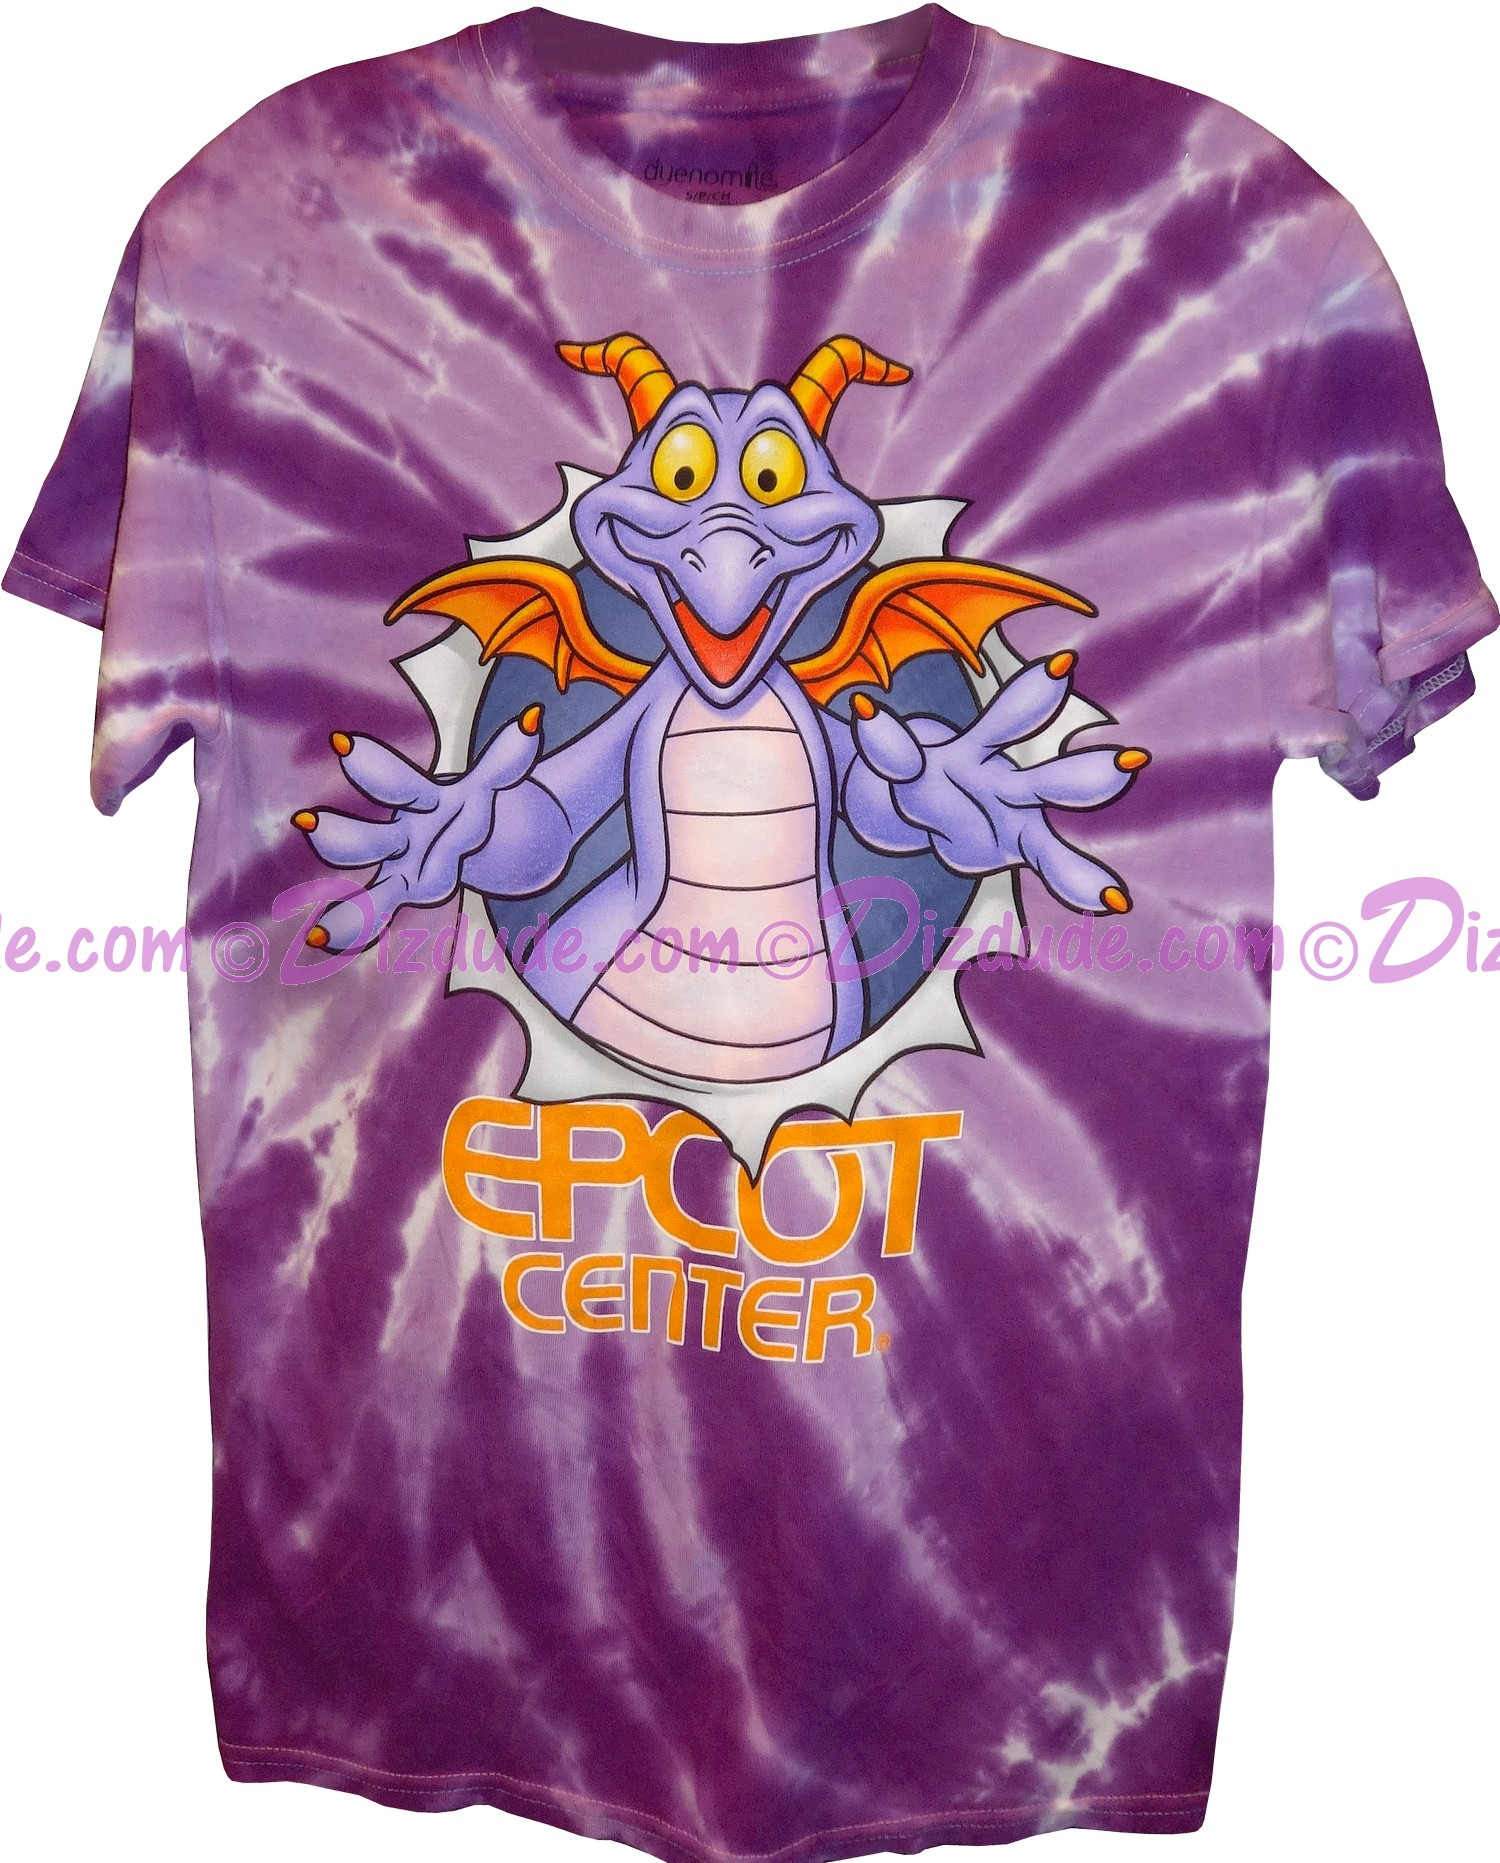 (SOLD OUT) Figment Adult T-shirt (Tee, Tshirt or T shirt) - Disney Epcot Center